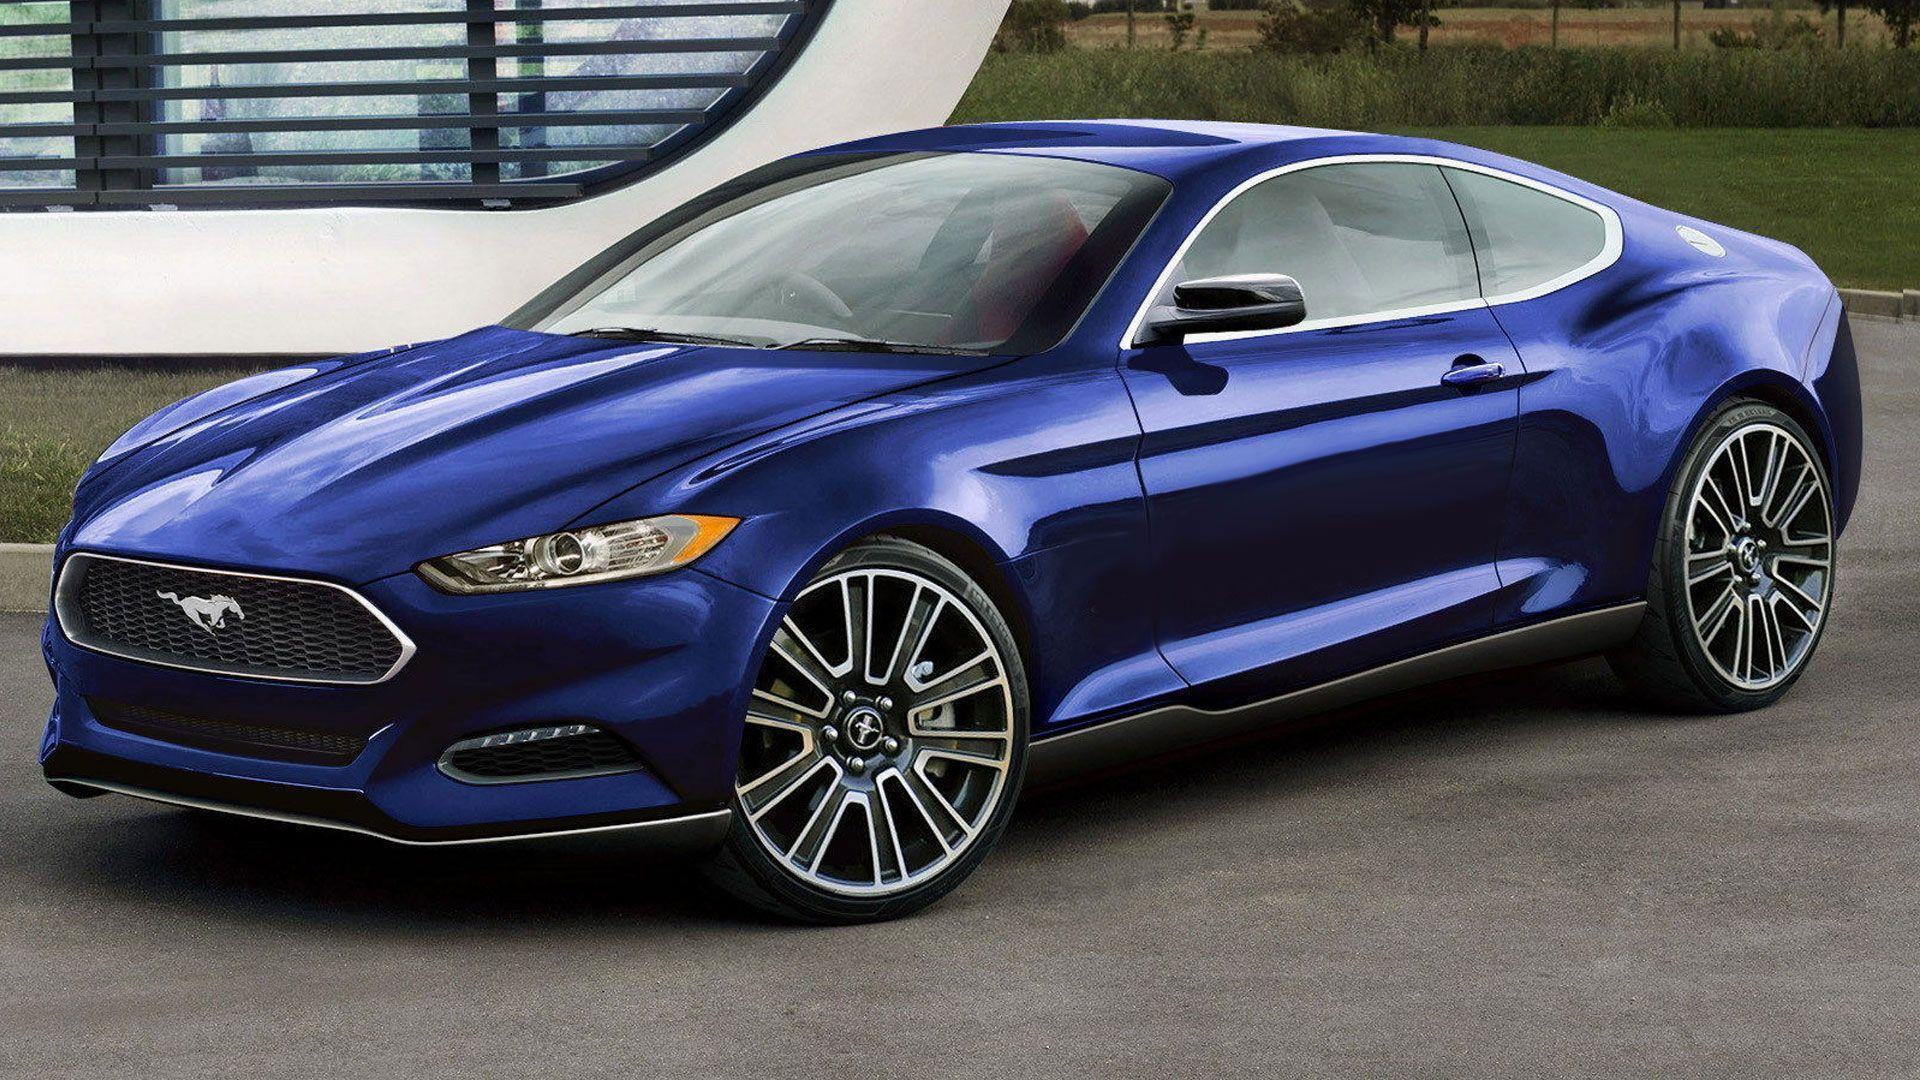 Cool Ford Mustang Wallpapers